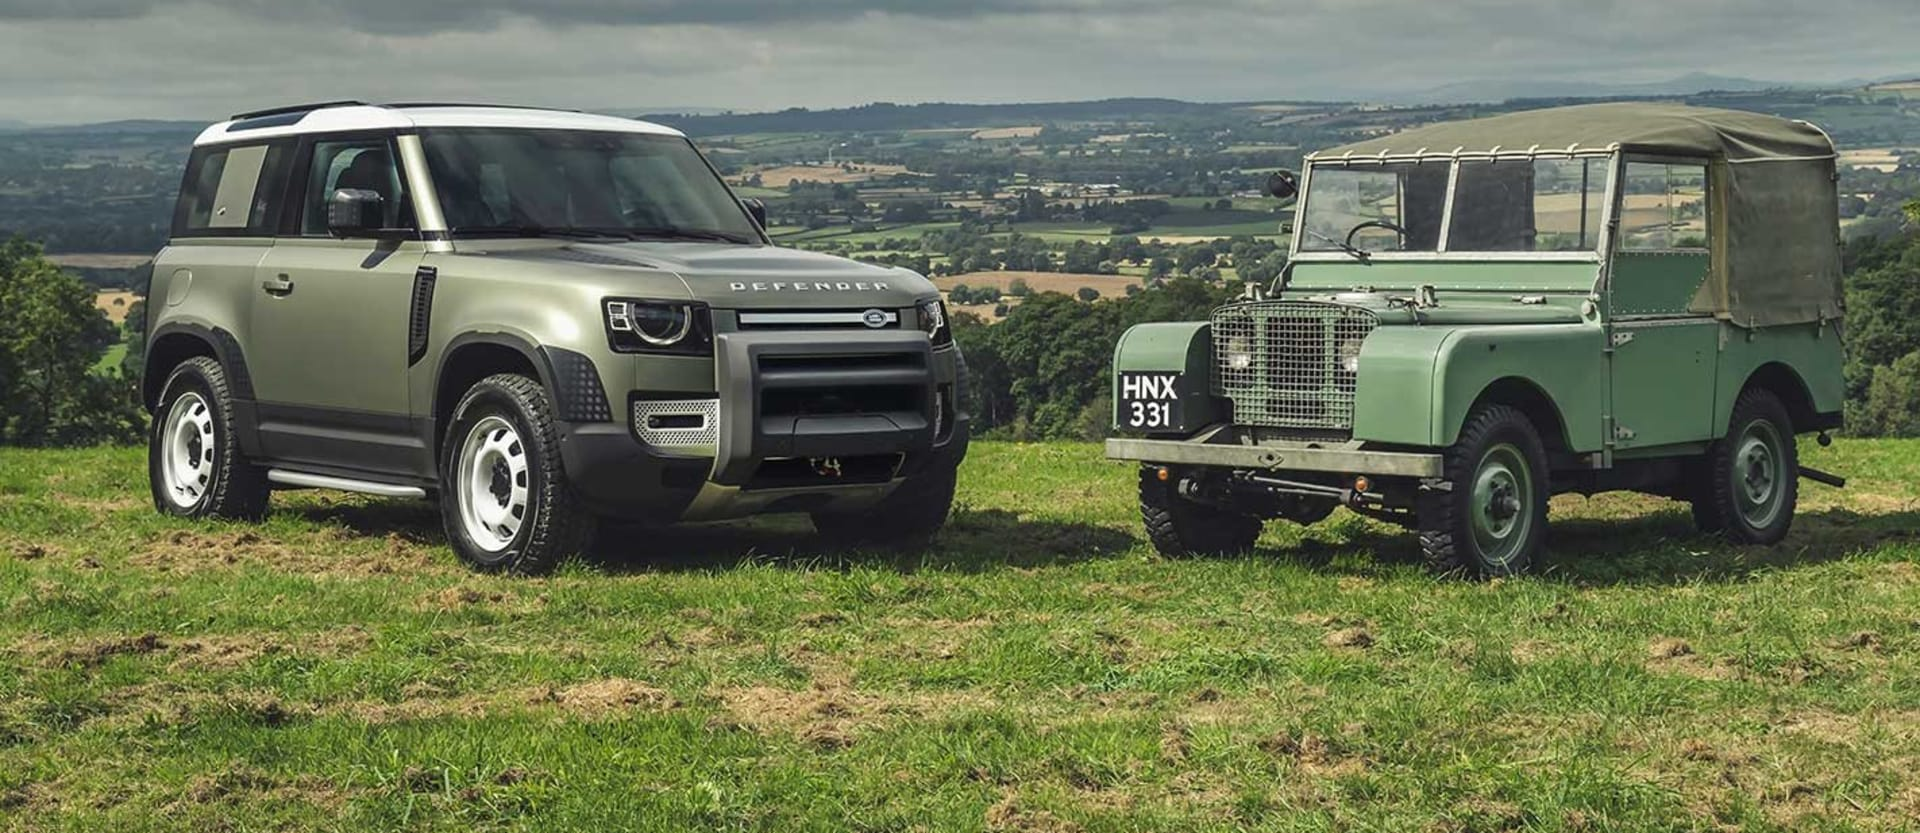 Opinion 2020 Land Rover Defender vs Classic Defender